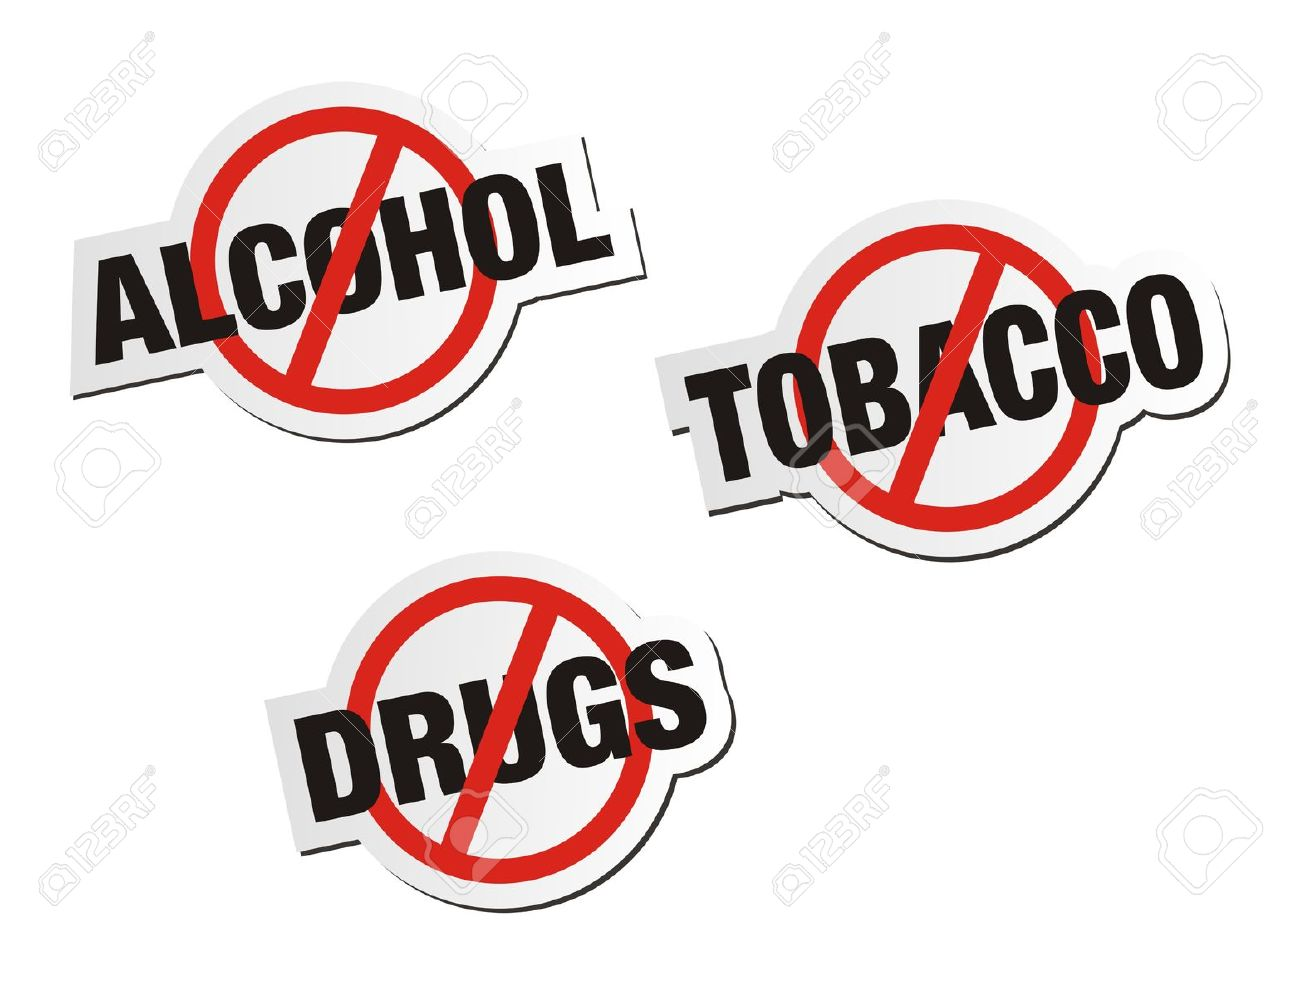 Anti tobacco clipart vector royalty free library 102+ Tobacco Clip Art | ClipartLook vector royalty free library